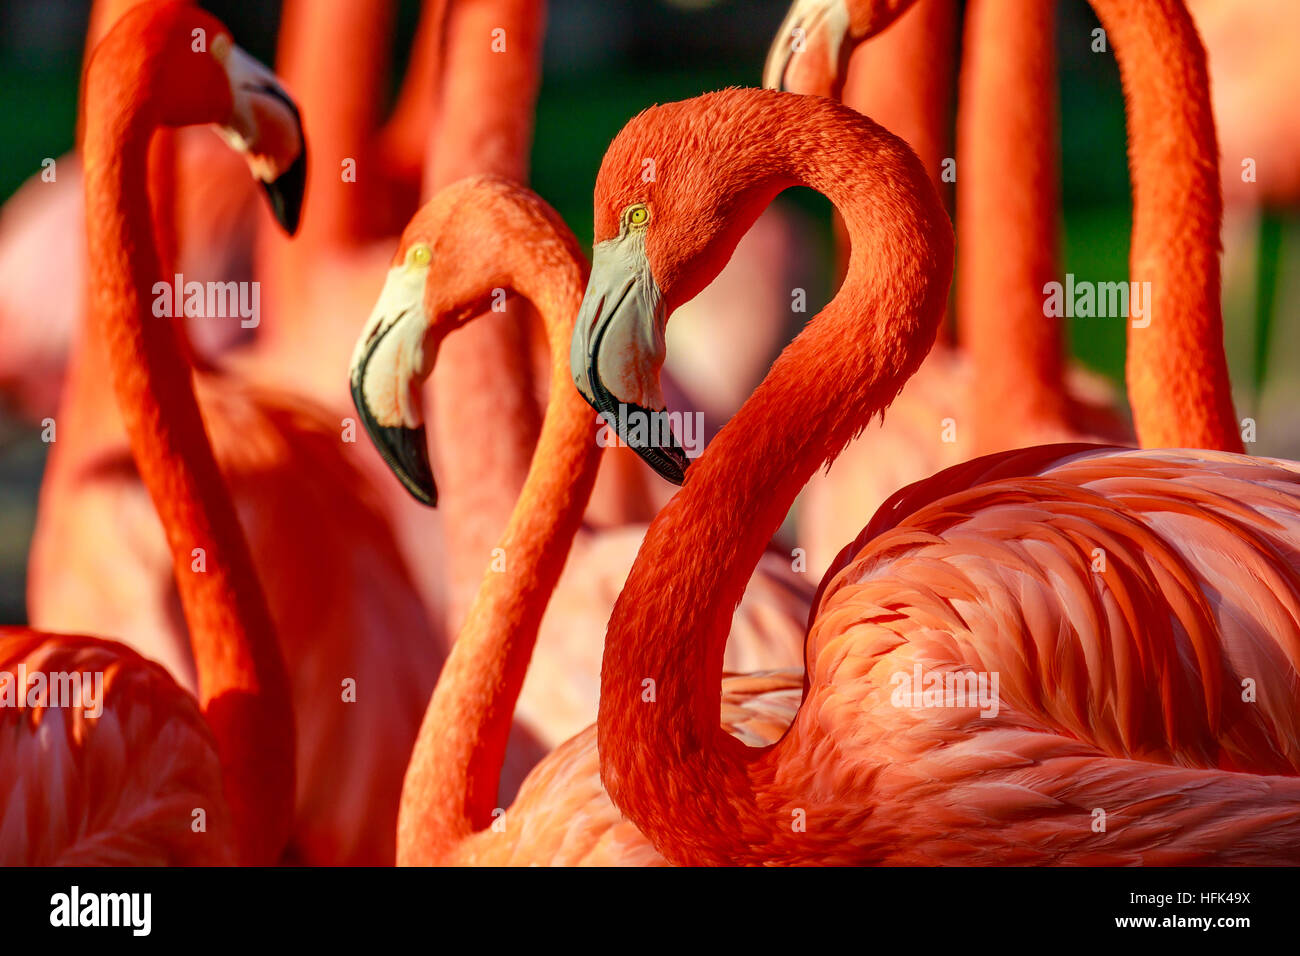 Close-up of a group of red flamingos. - Stock Image